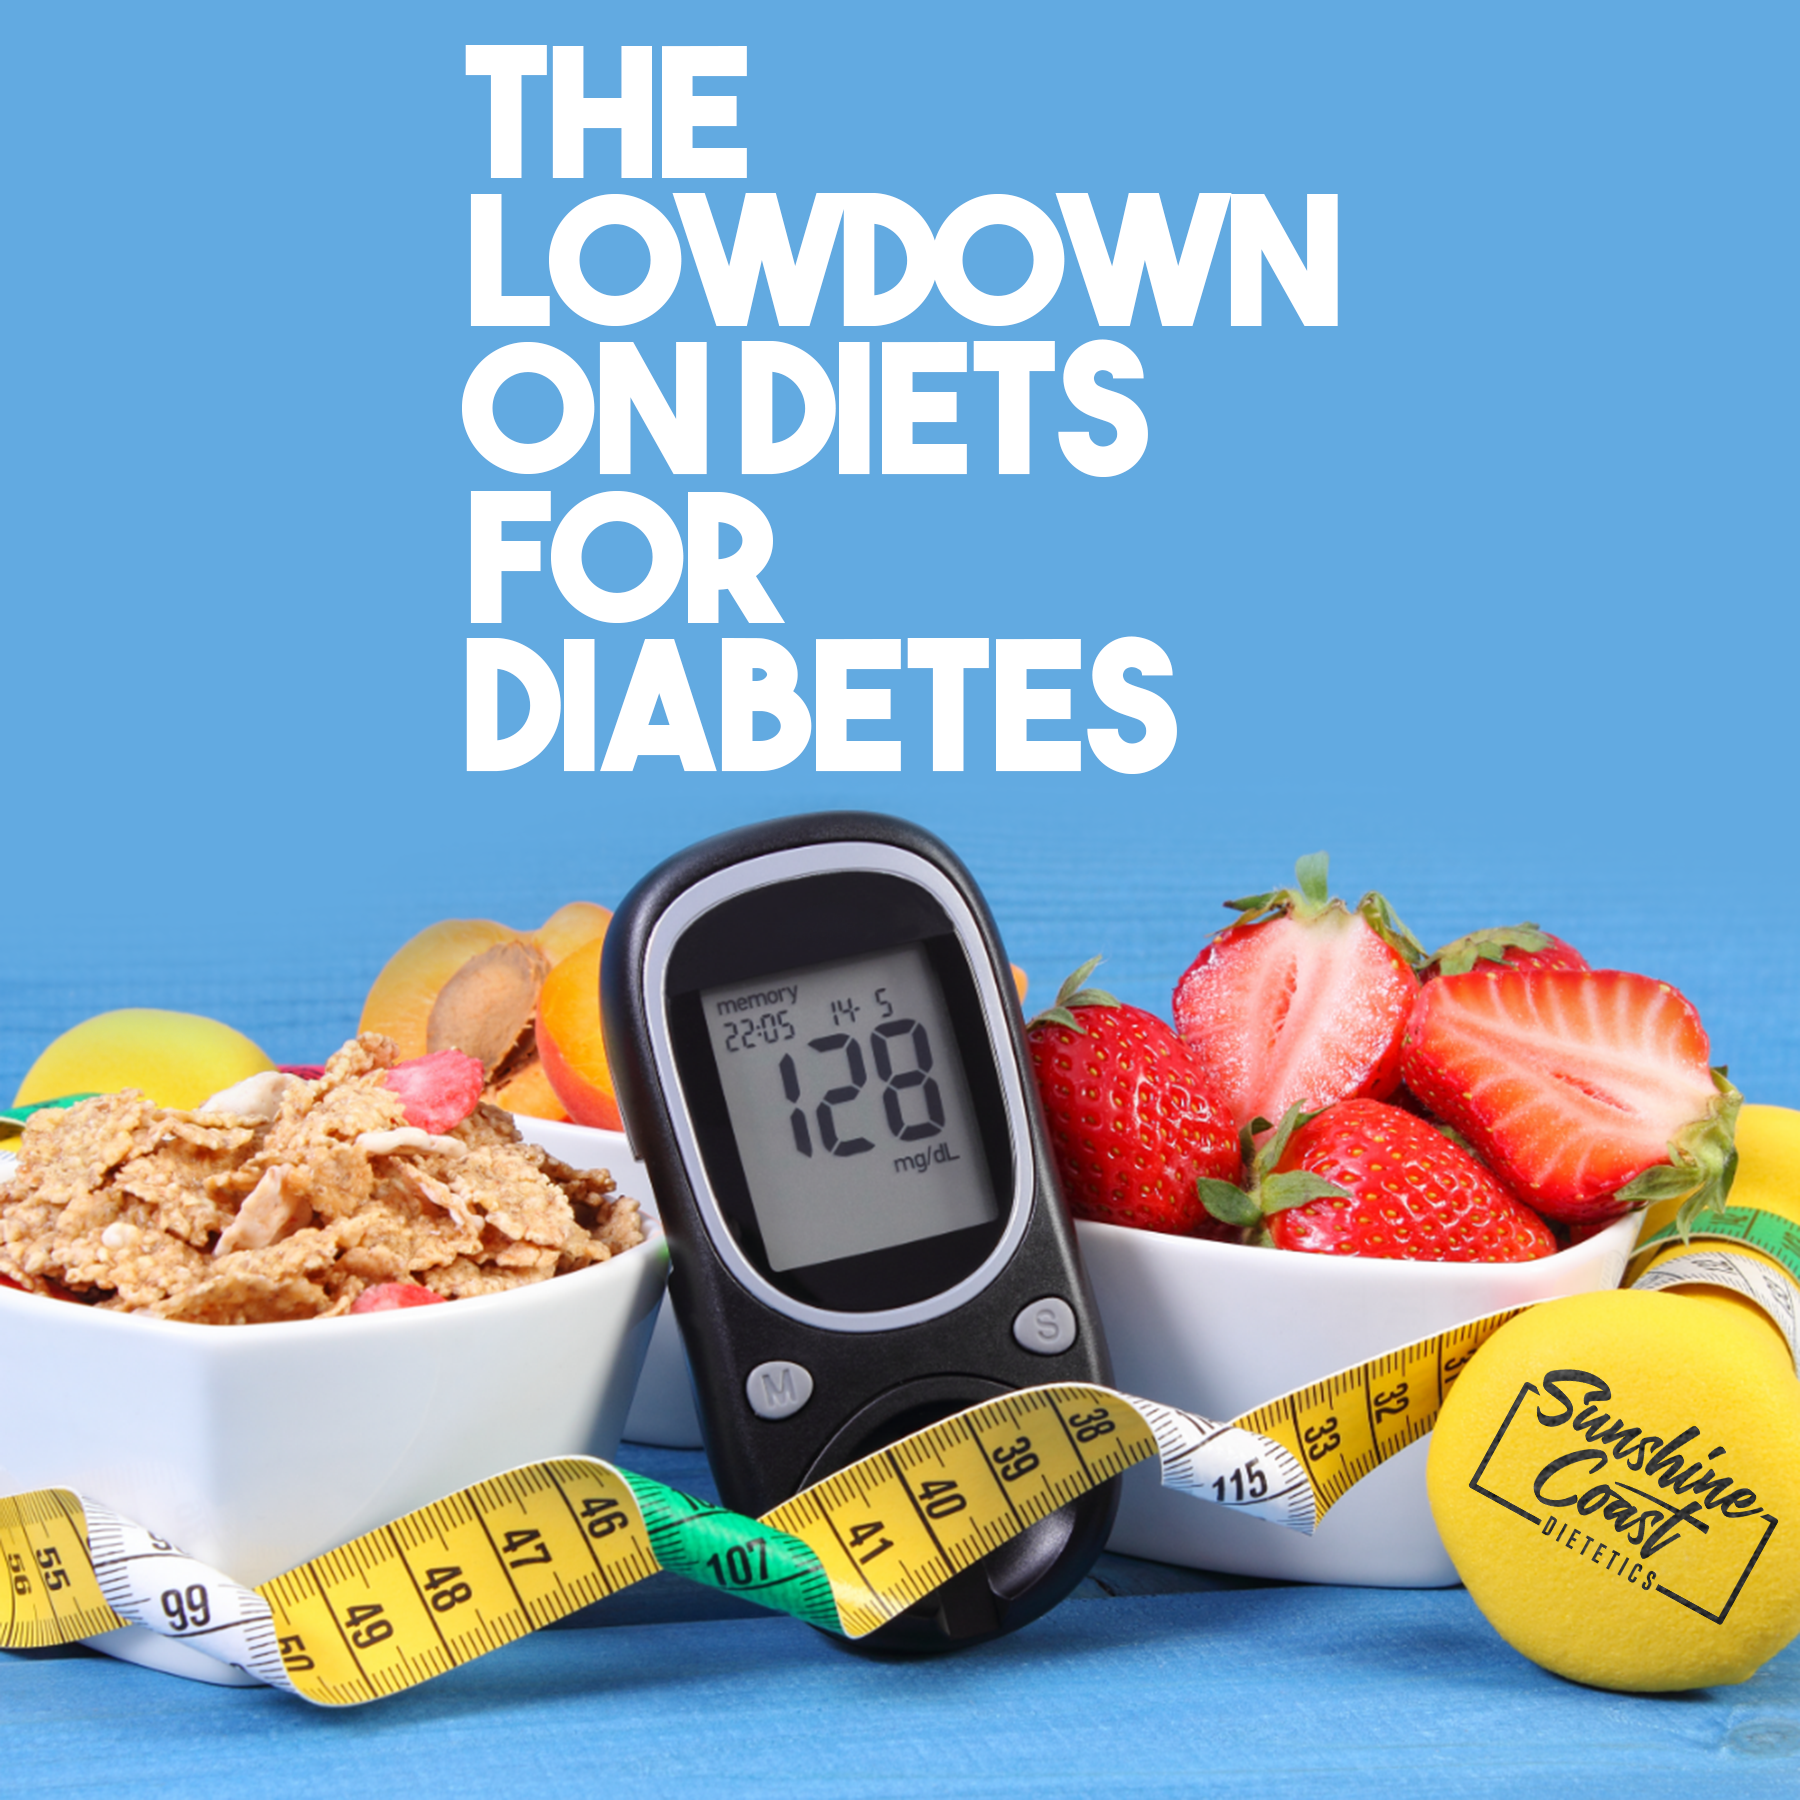 The Lowdown on Diets for Diabetes